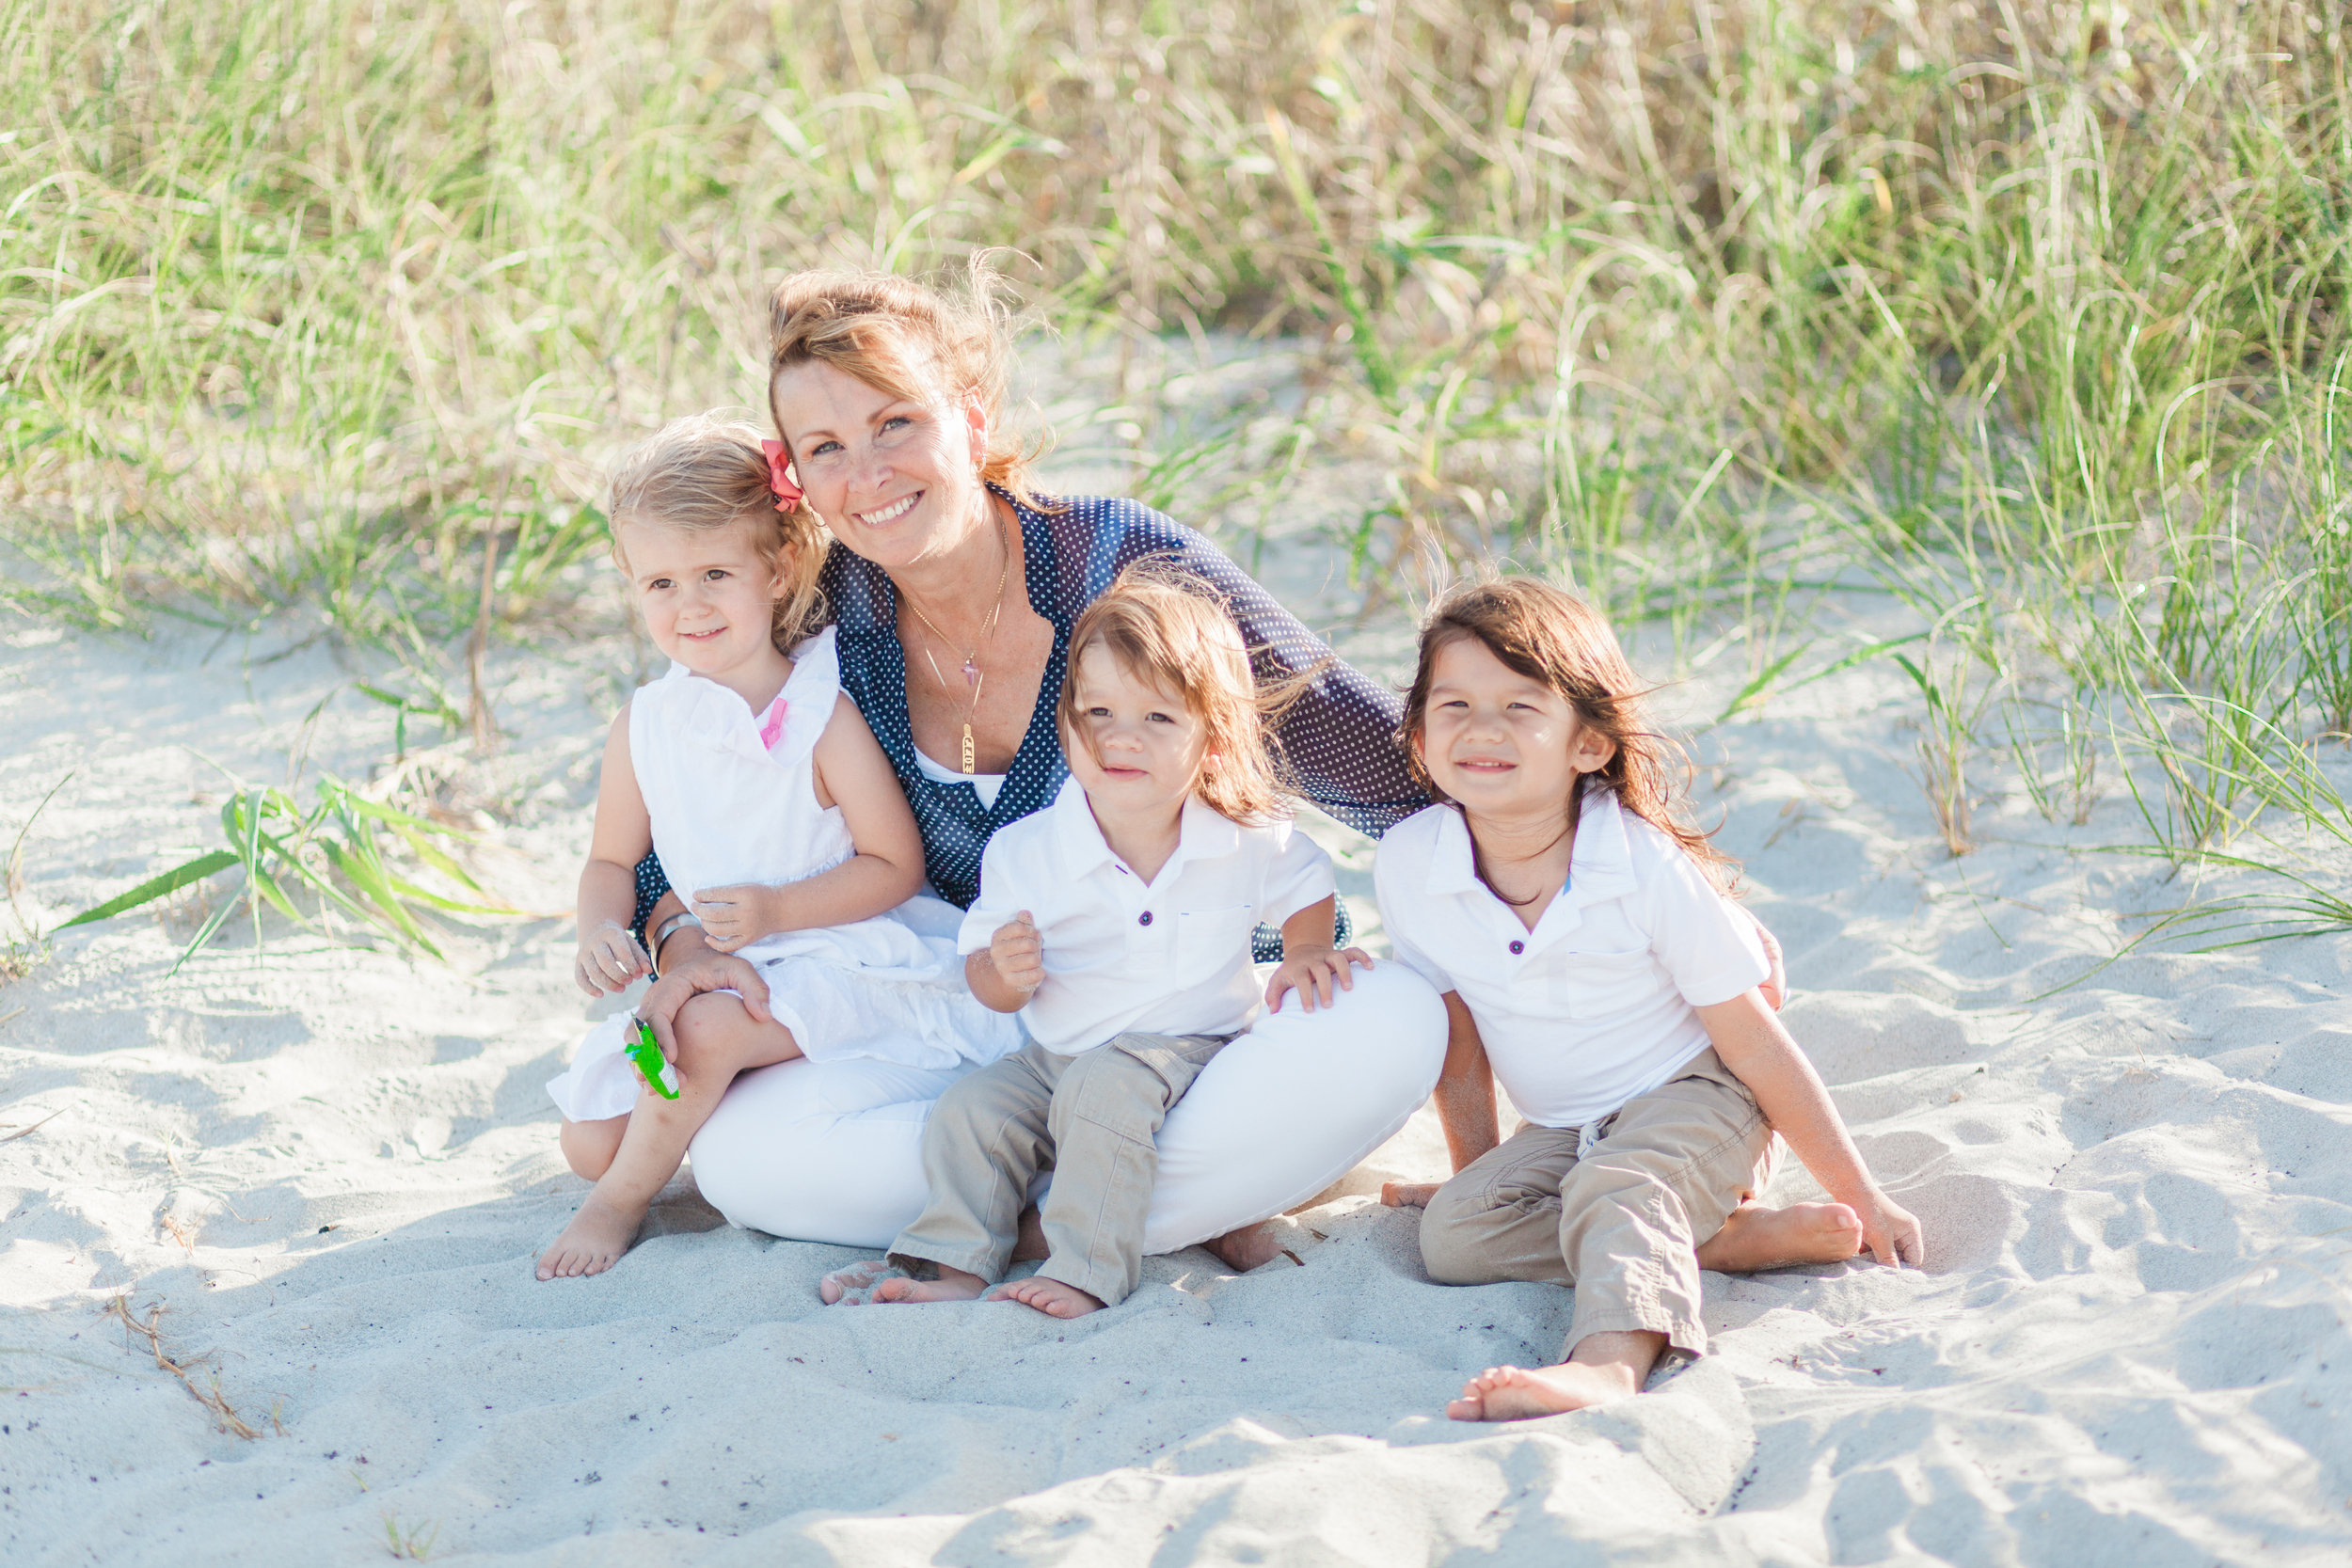 McKee Family Beach Session | Melbourne, Florida | Michelle Mock Photography